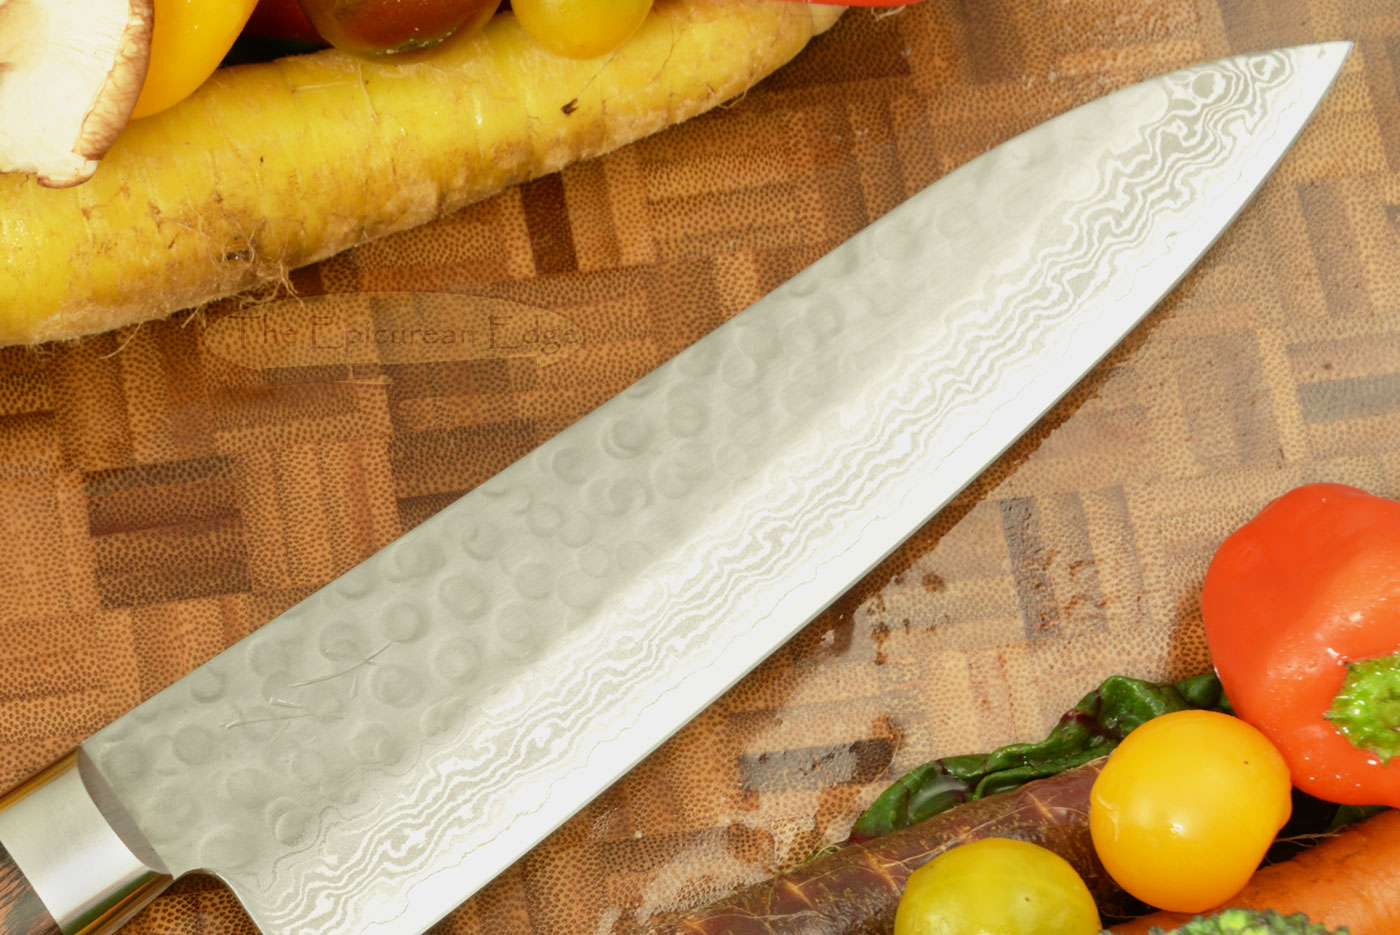 Chef's Knife - Gyuto - 7-1/8 in. (180mm) WGAD18-07-0sp